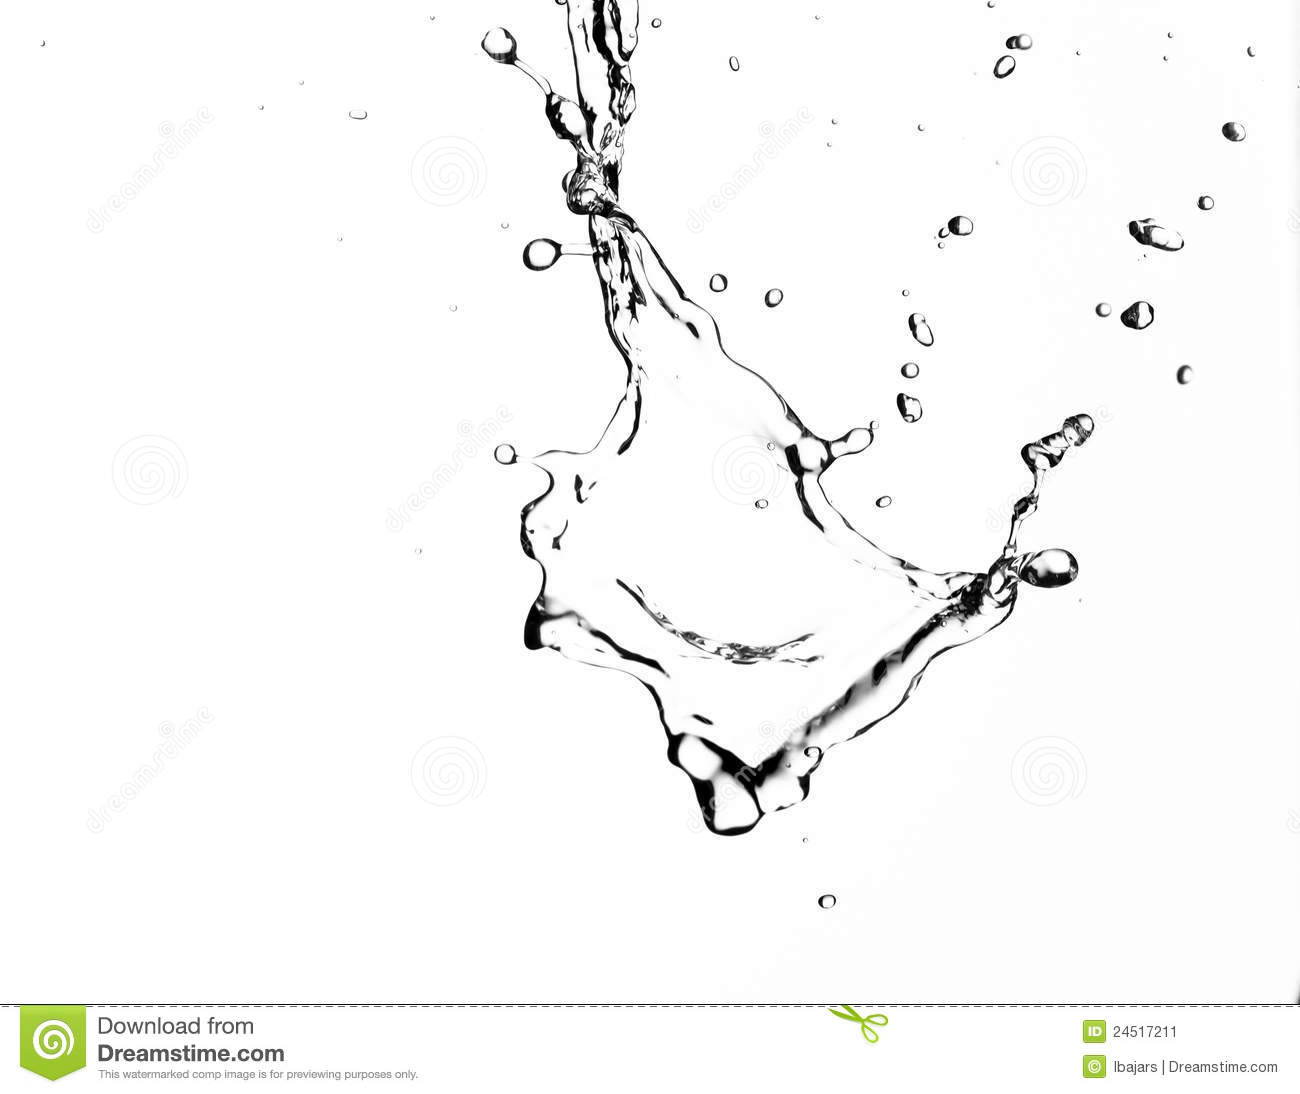 Water Splash Clip Art Black and White.